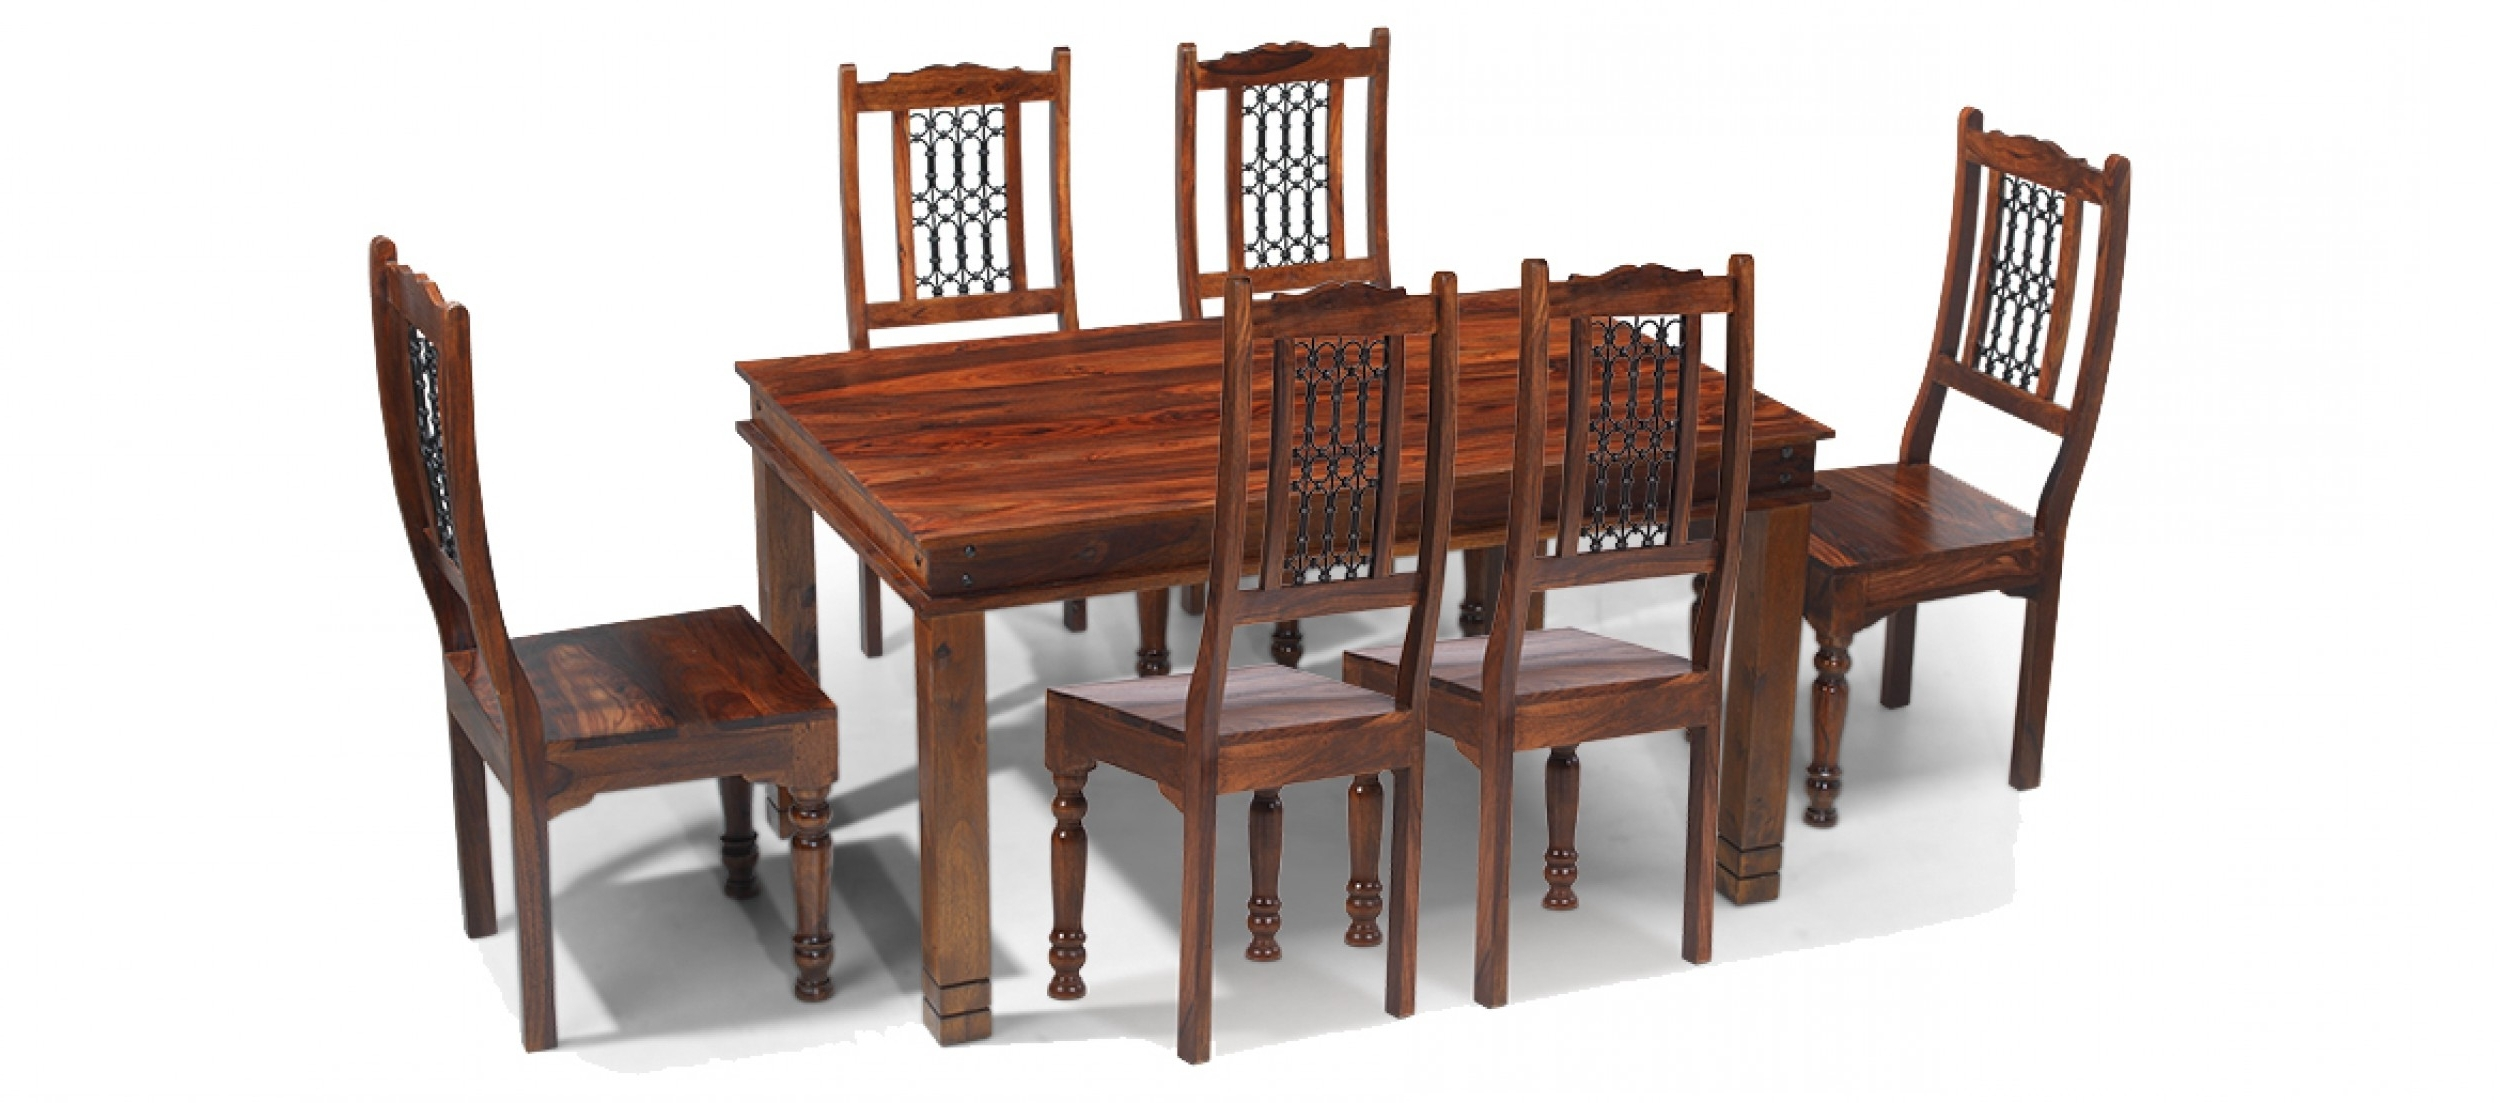 Well Known Oak Dining Tables With 6 Chairs Within Jali Sheesham 160 Cm Chunky Dining Table And 6 Chairs (View 22 of 25)